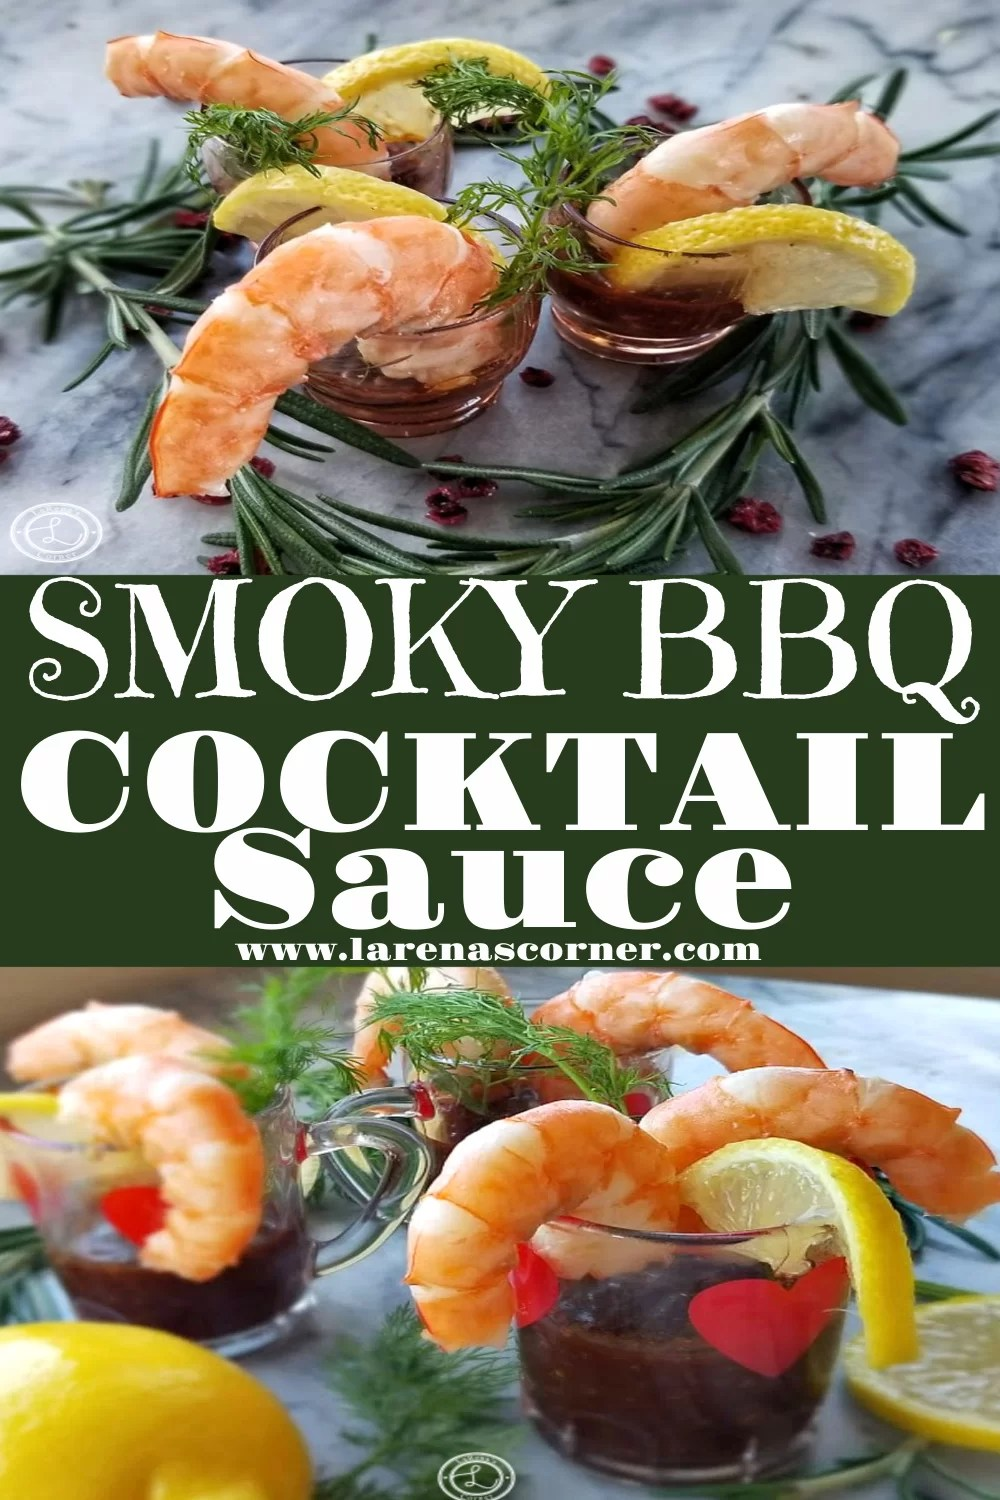 Smoky BBQ Cocktail Sauce and pictures of shrimp with it.